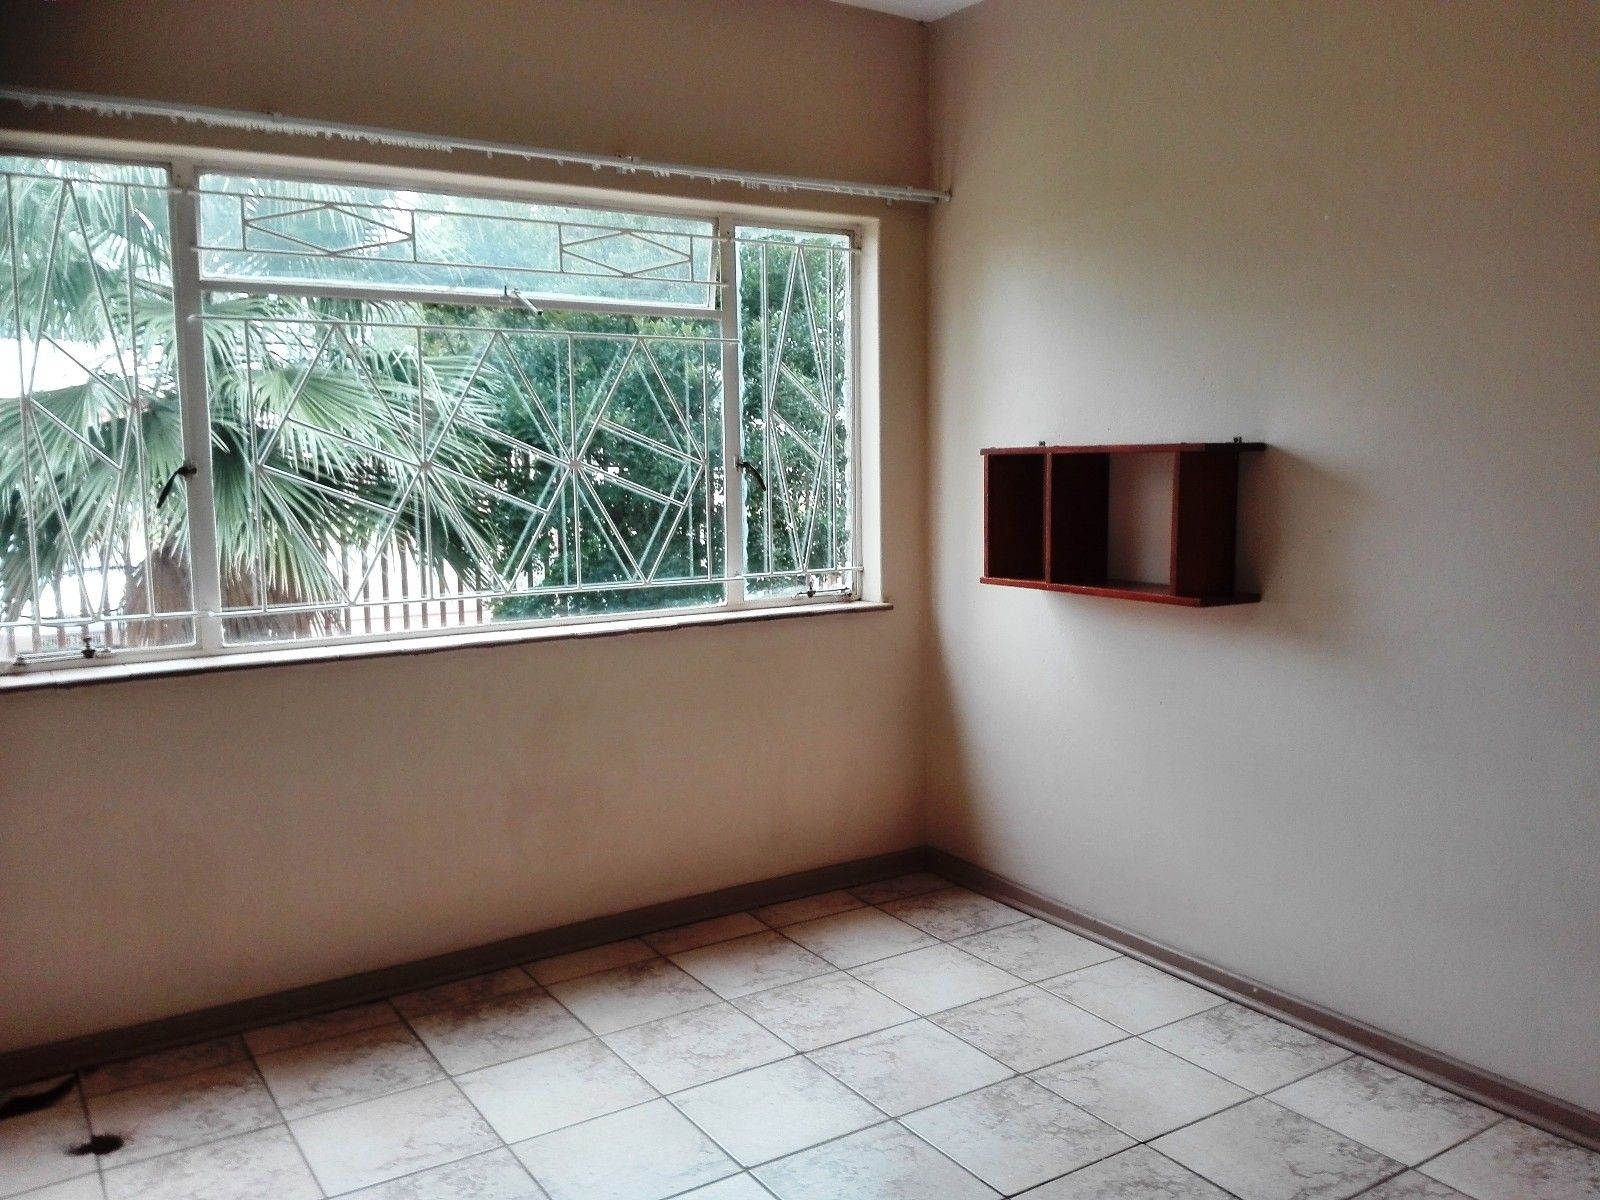 Bult West property for sale. Ref No: 13466336. Picture no 20